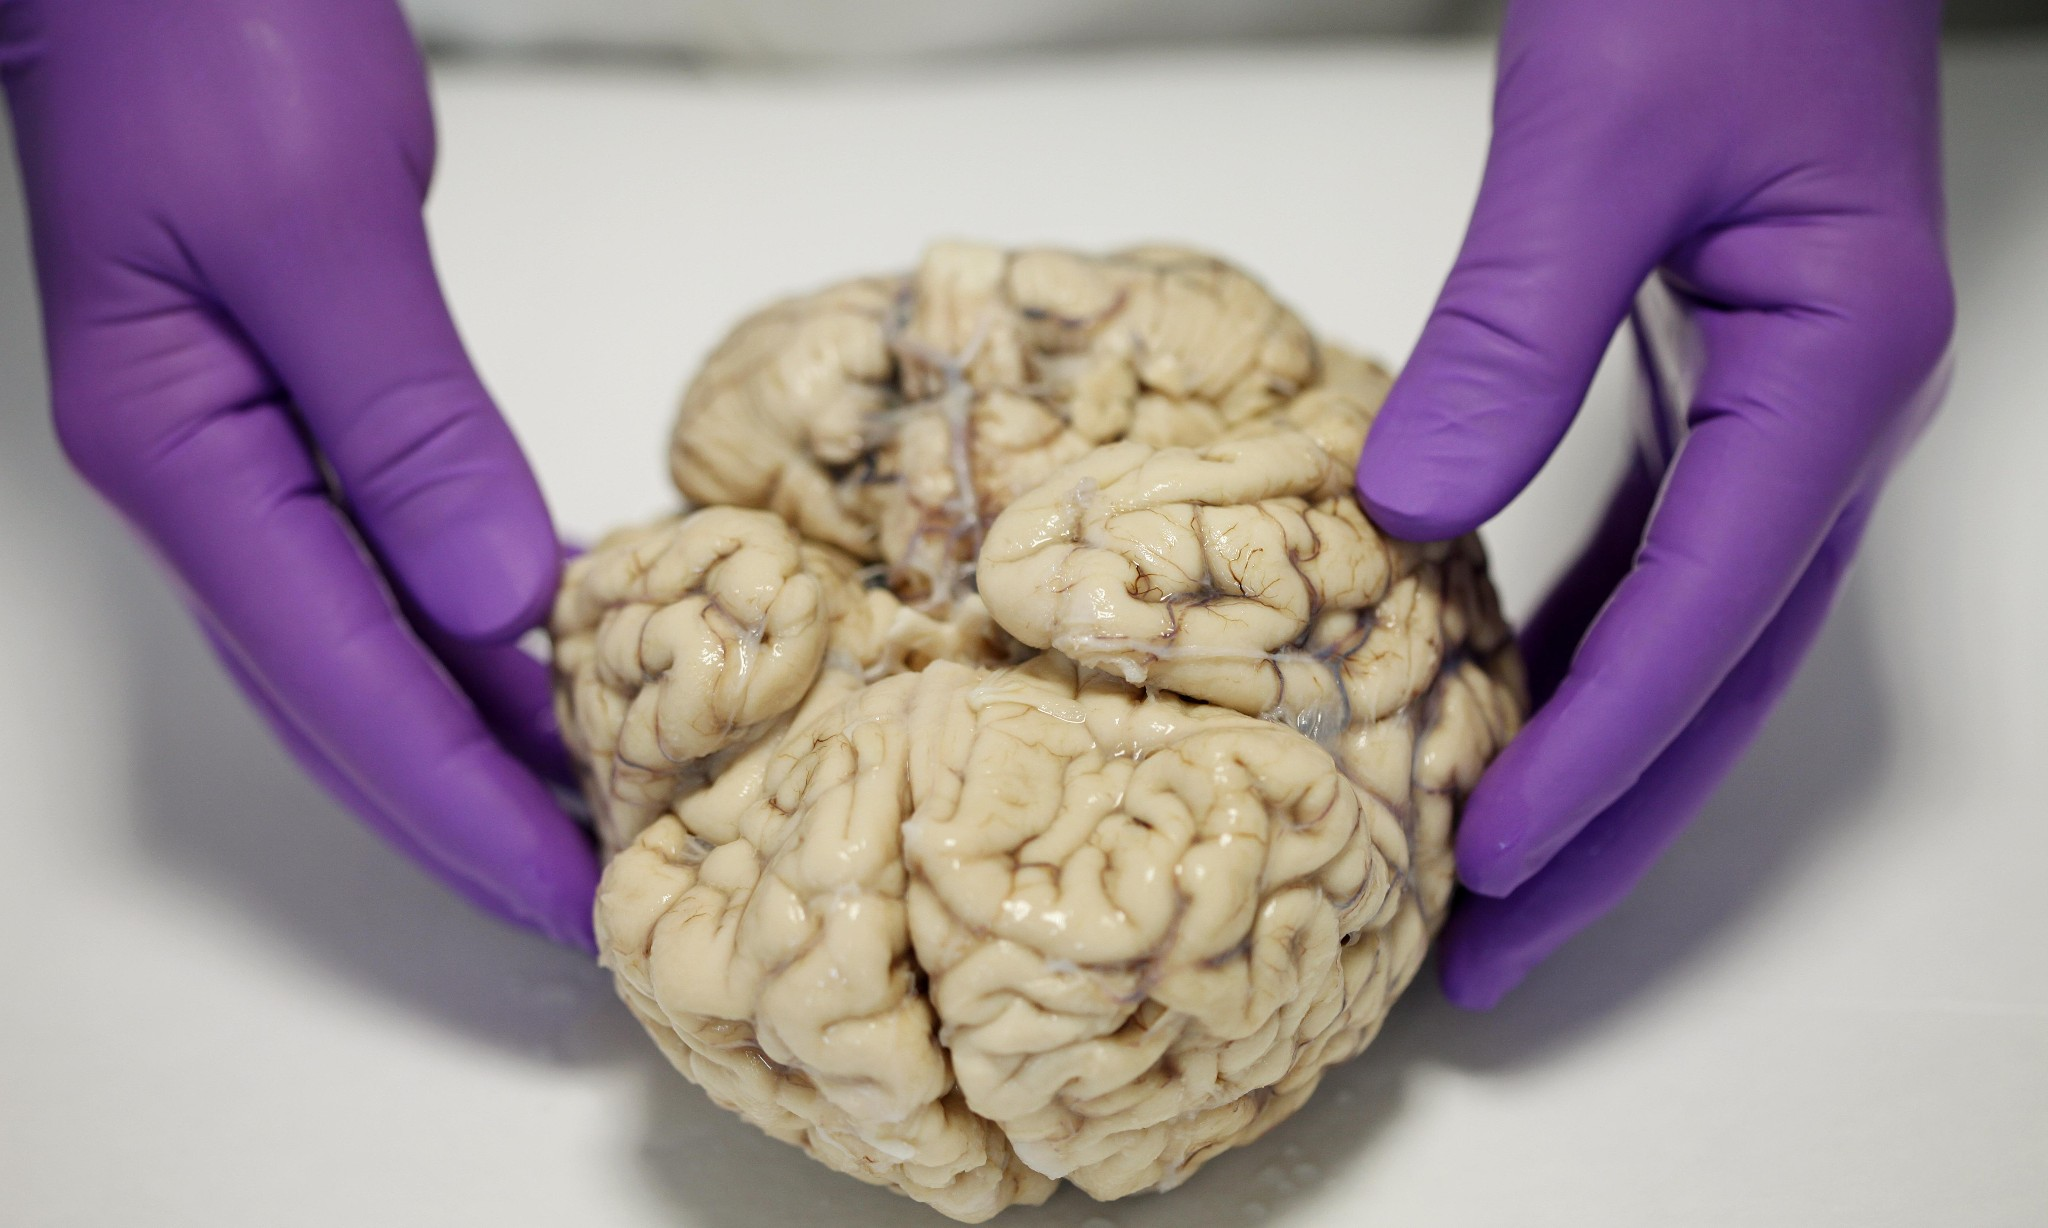 Mental health problems aren't all in the brain